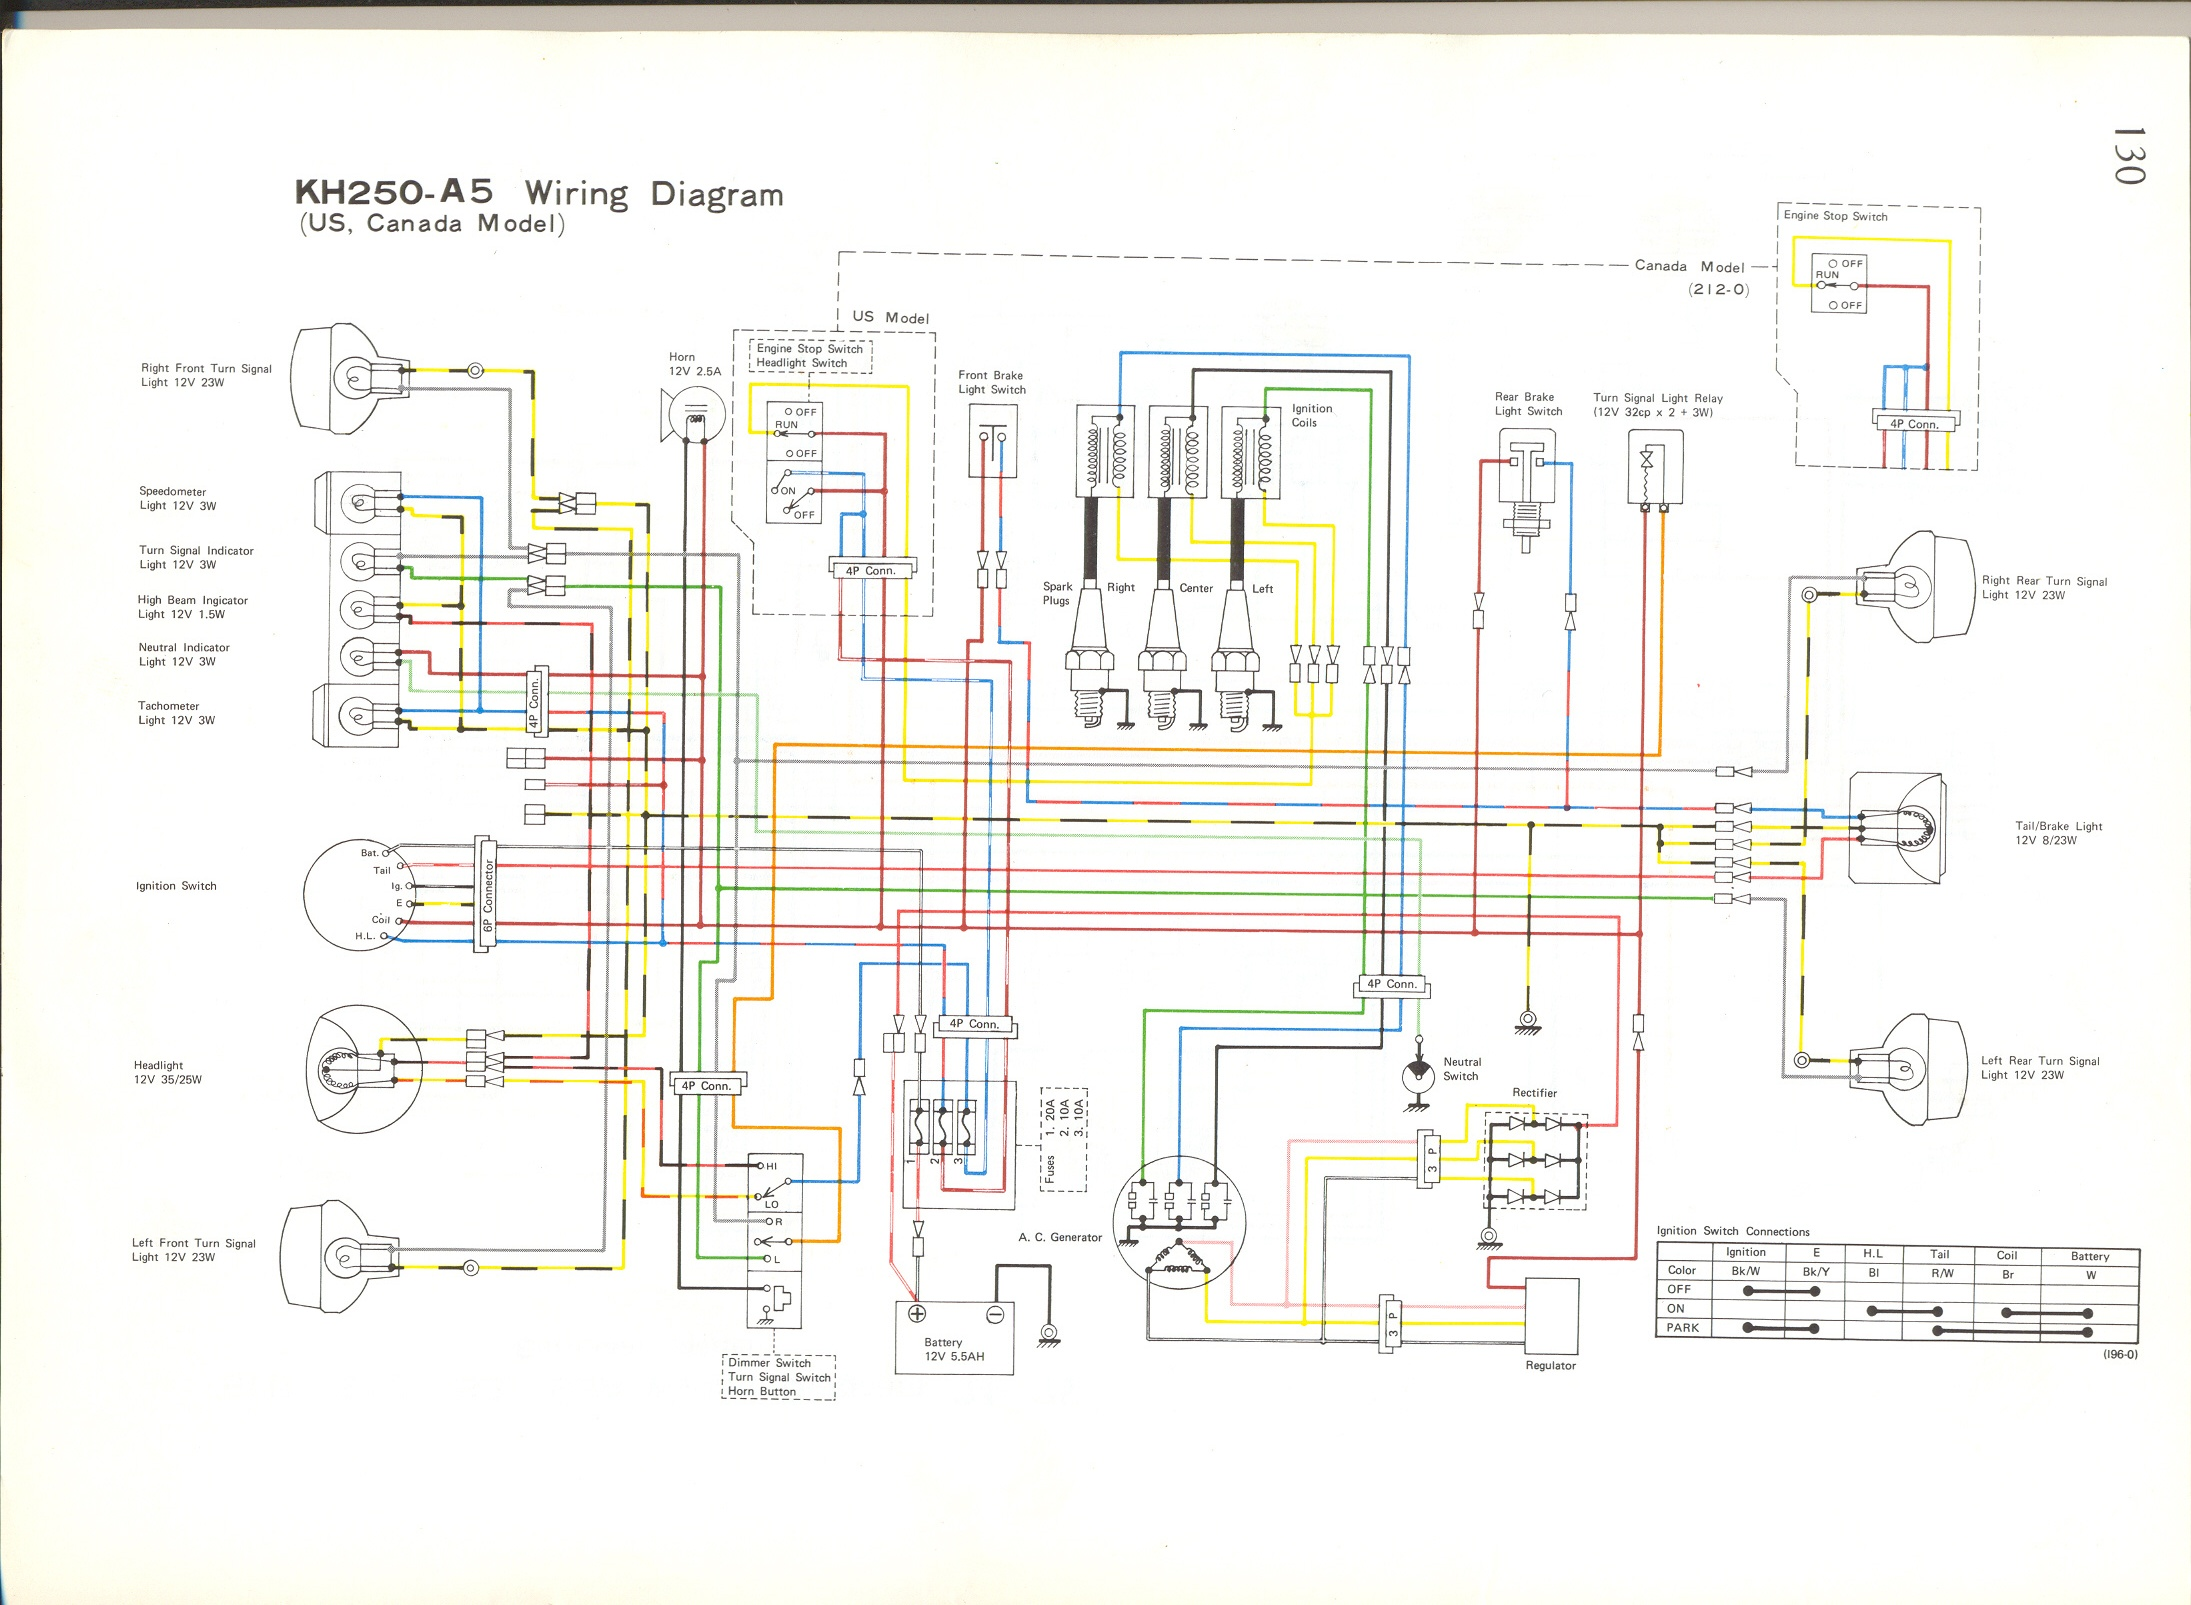 wiring diagrams rh 3cyl com kawasaki eliminator 250 wiring diagram Kawasaki 300 ATV Wiring Diagram